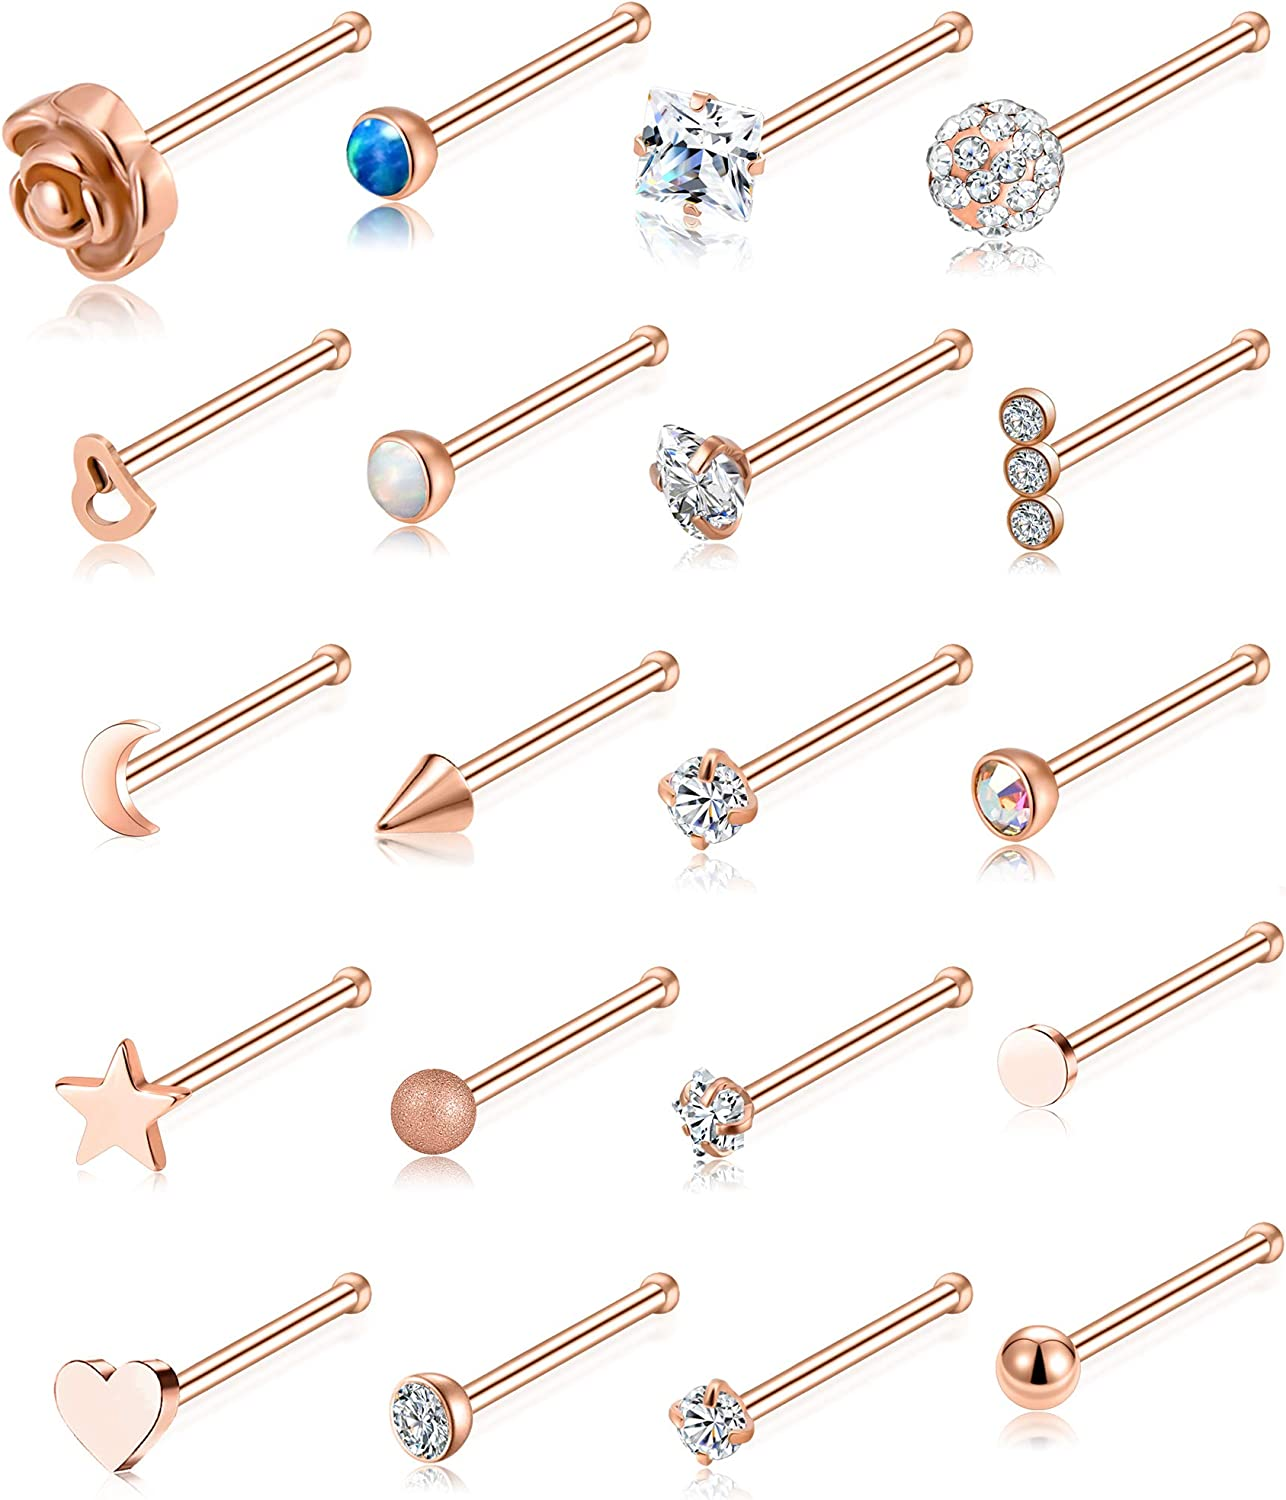 studs and gem stone nose studs. Stainless Steel coloured Nose rings